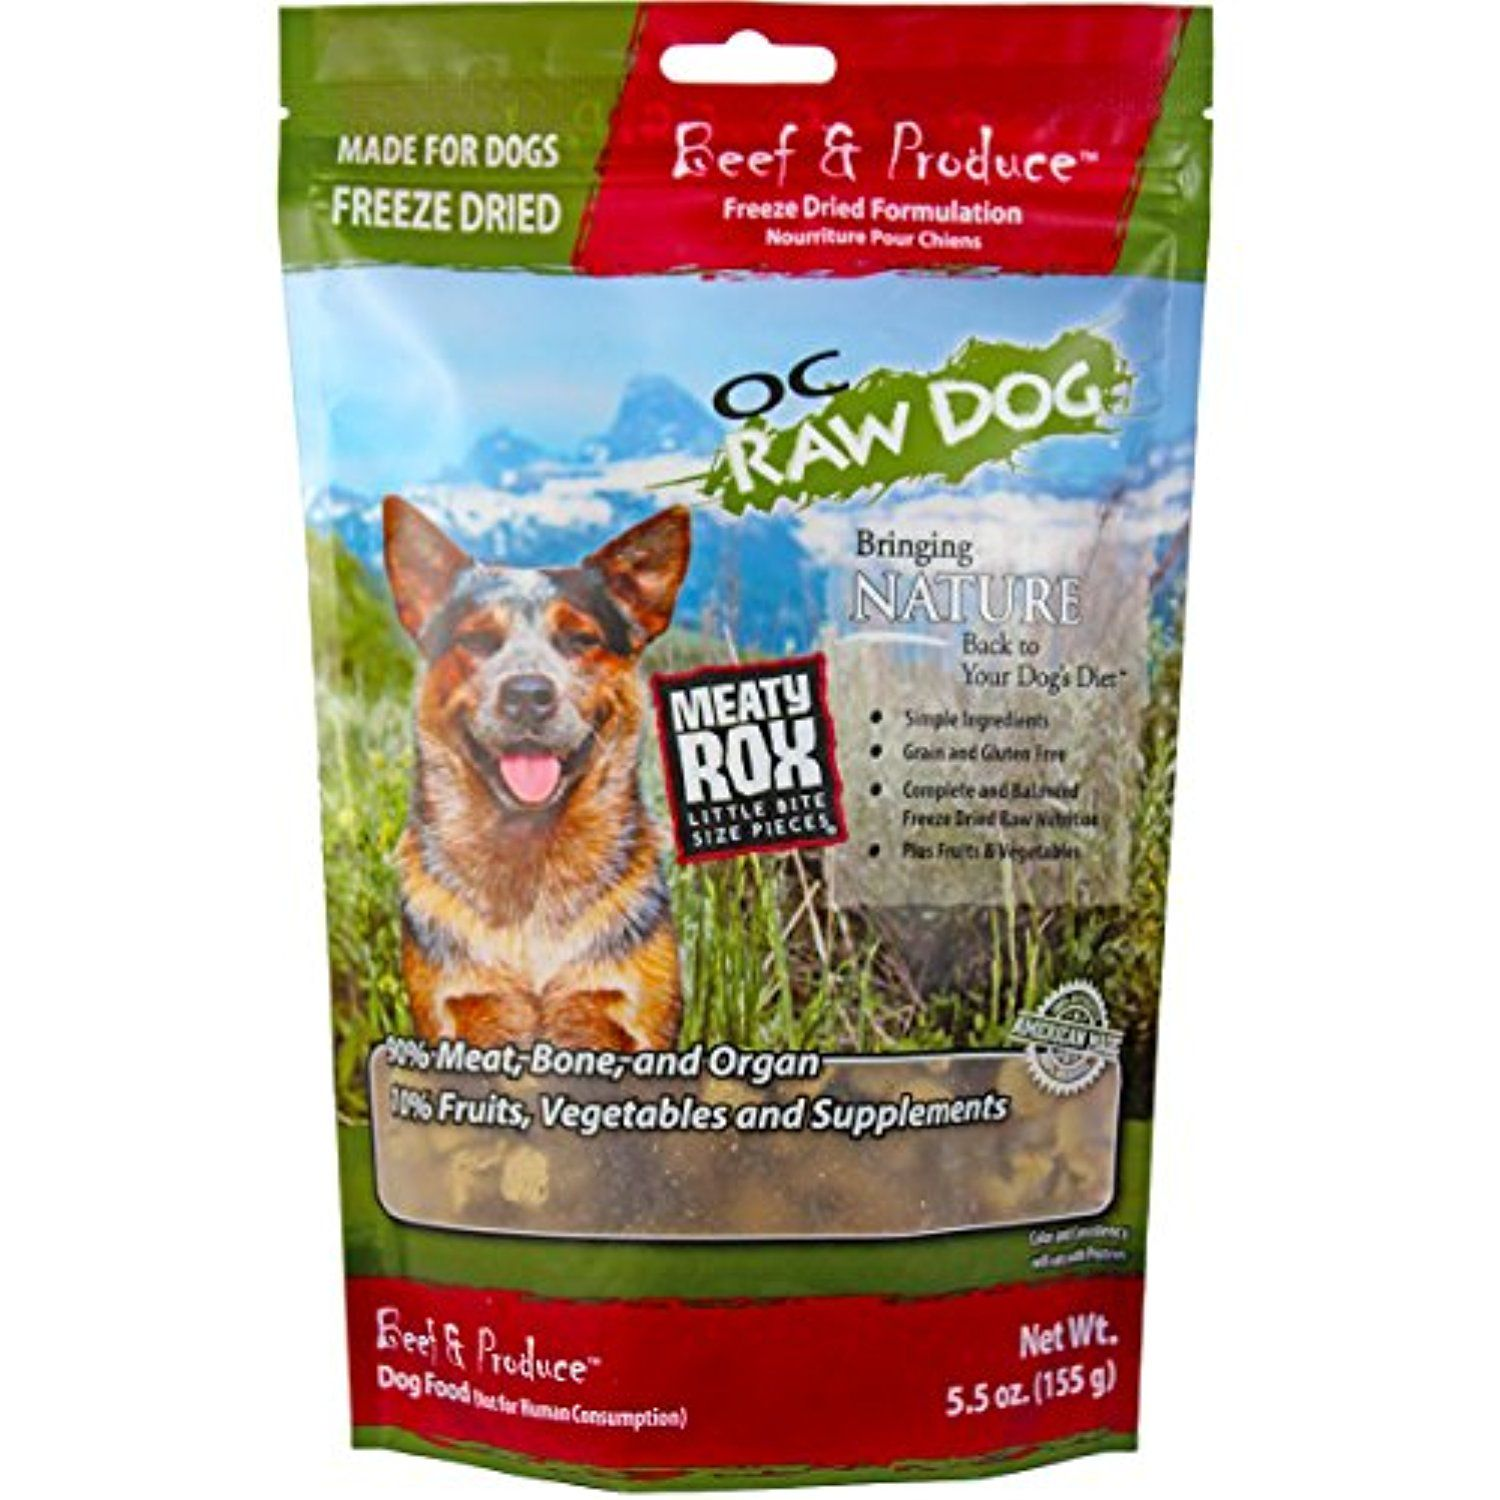 Freeze dried meaty rox beef 55 oz for more